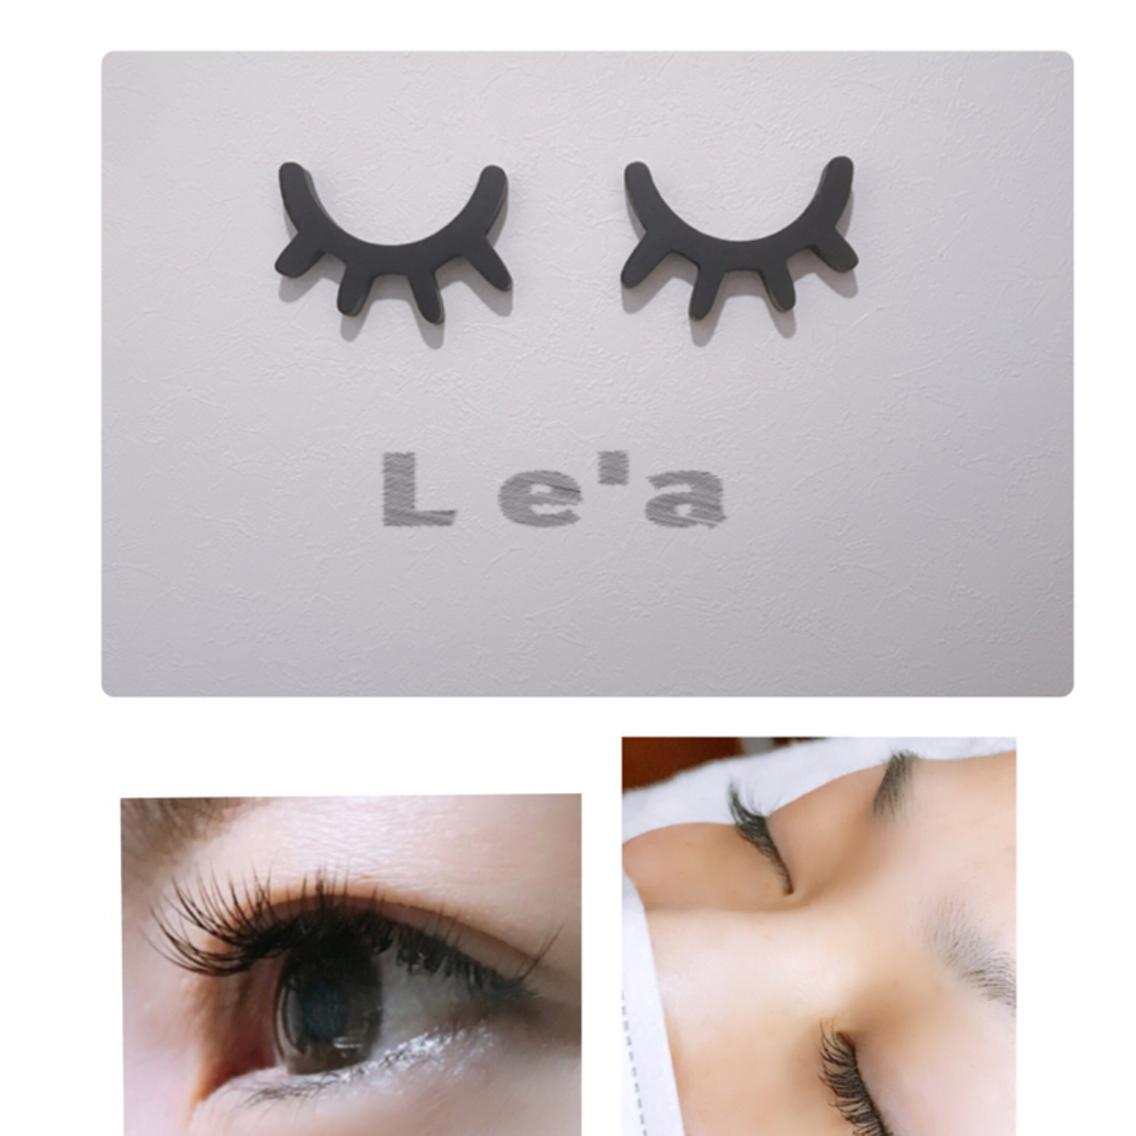 eyelash salon  L e'a所属・L e'a・・miwaの掲載